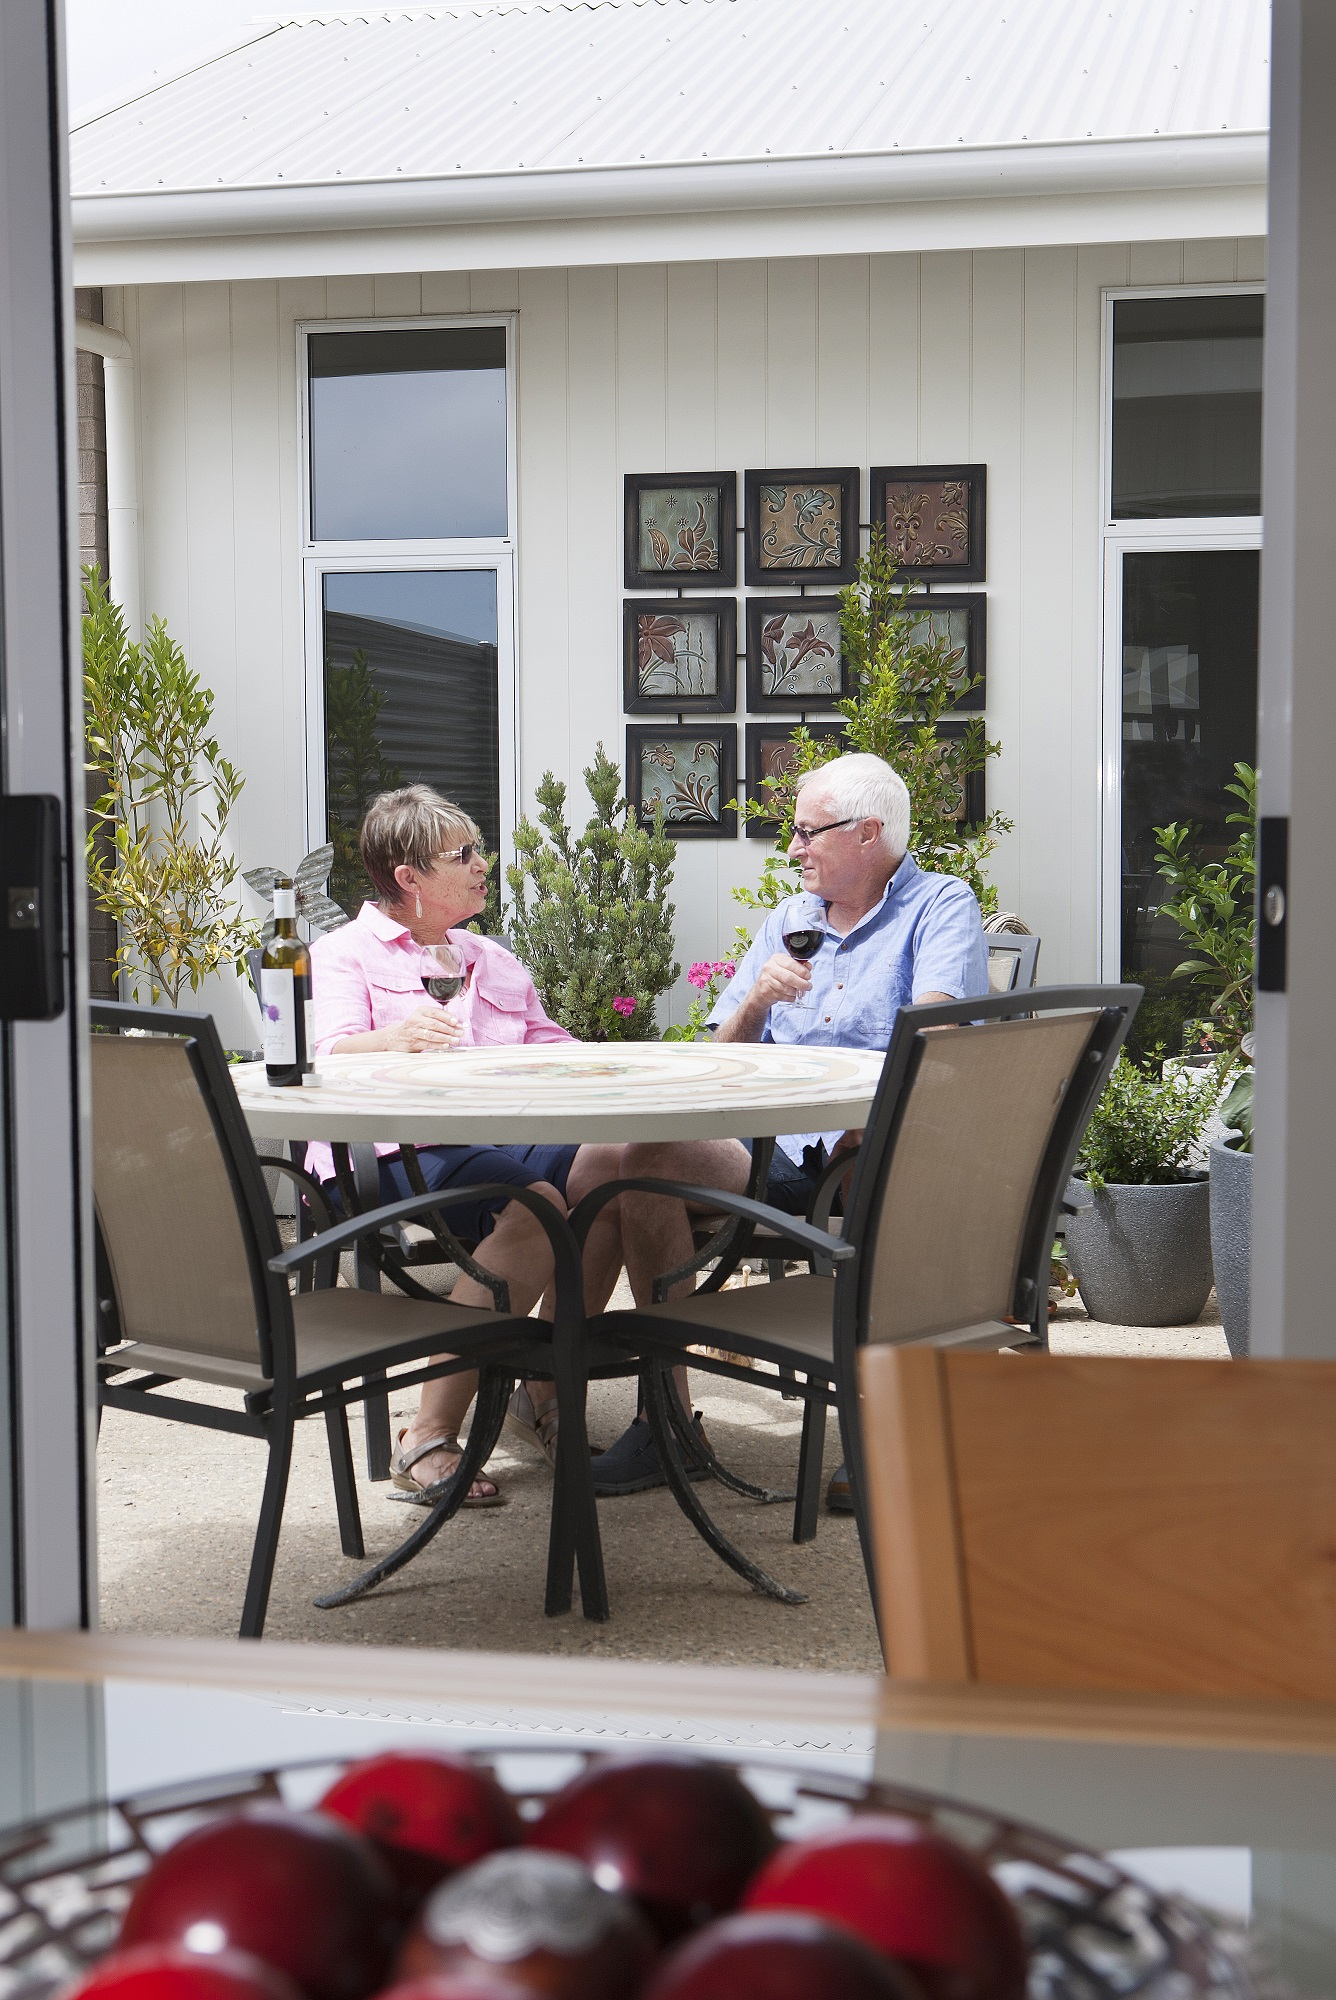 Compare retirement villages in Hayborough - Chiton Retirement Living